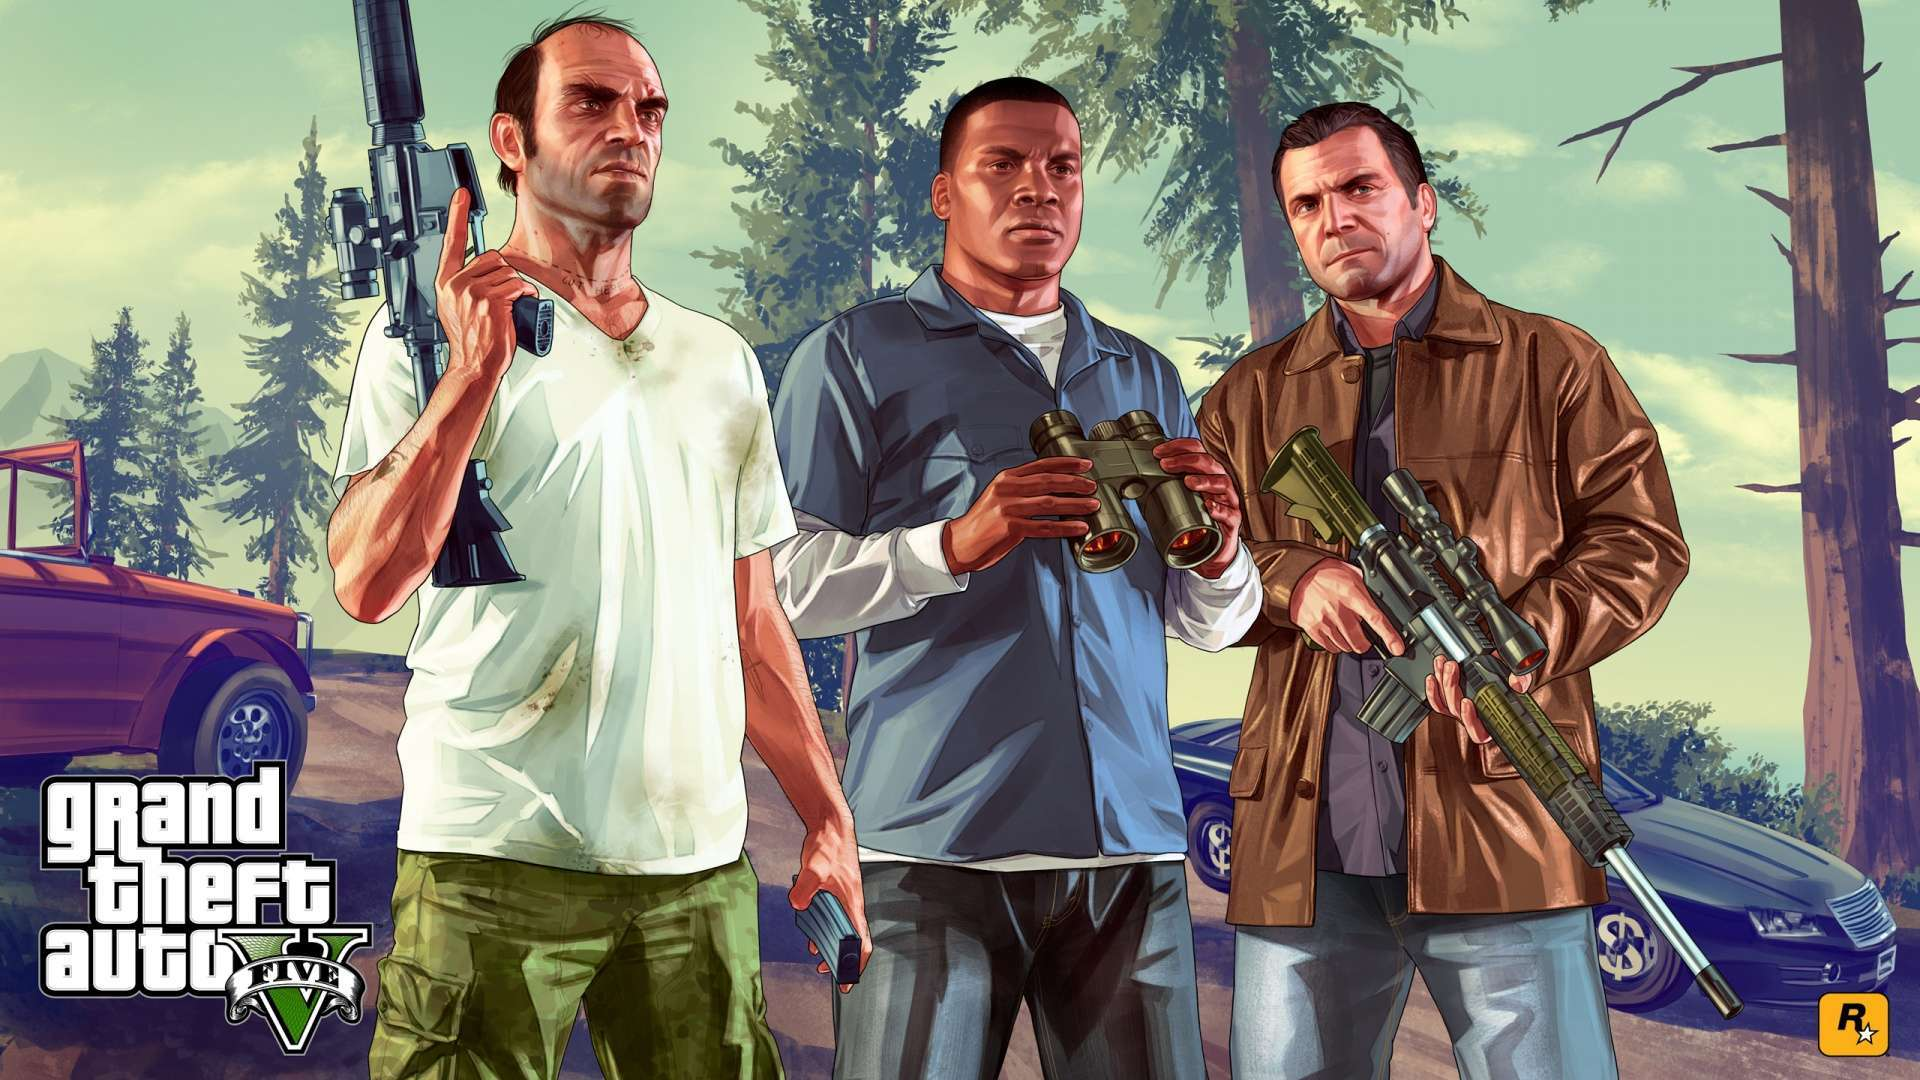 Wallpaper Grand Theft Auto Gta 5 HD Wallpaper 1080p Upload at March 1920x1080